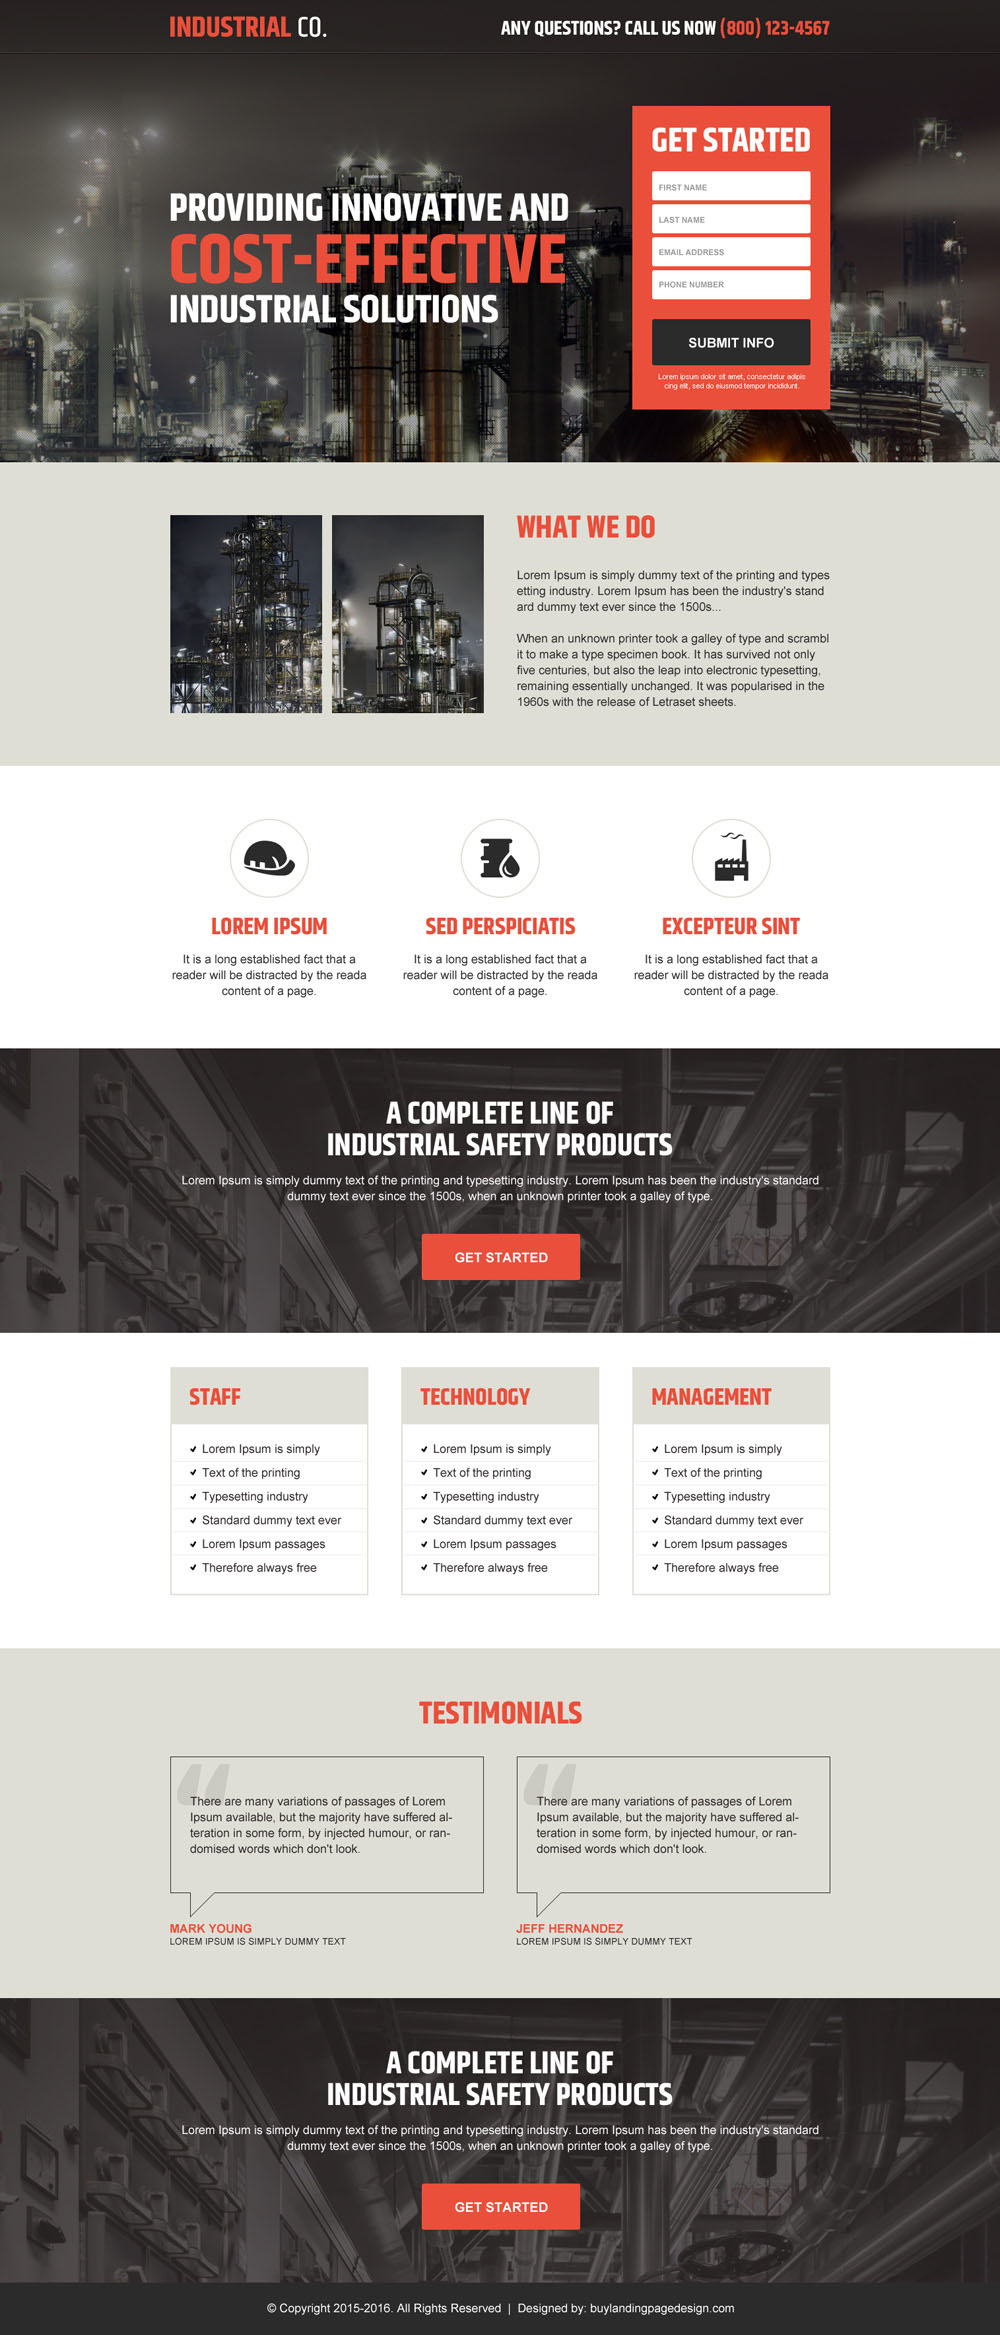 industrial-company-lead-generation-converting-landing-page-design-001